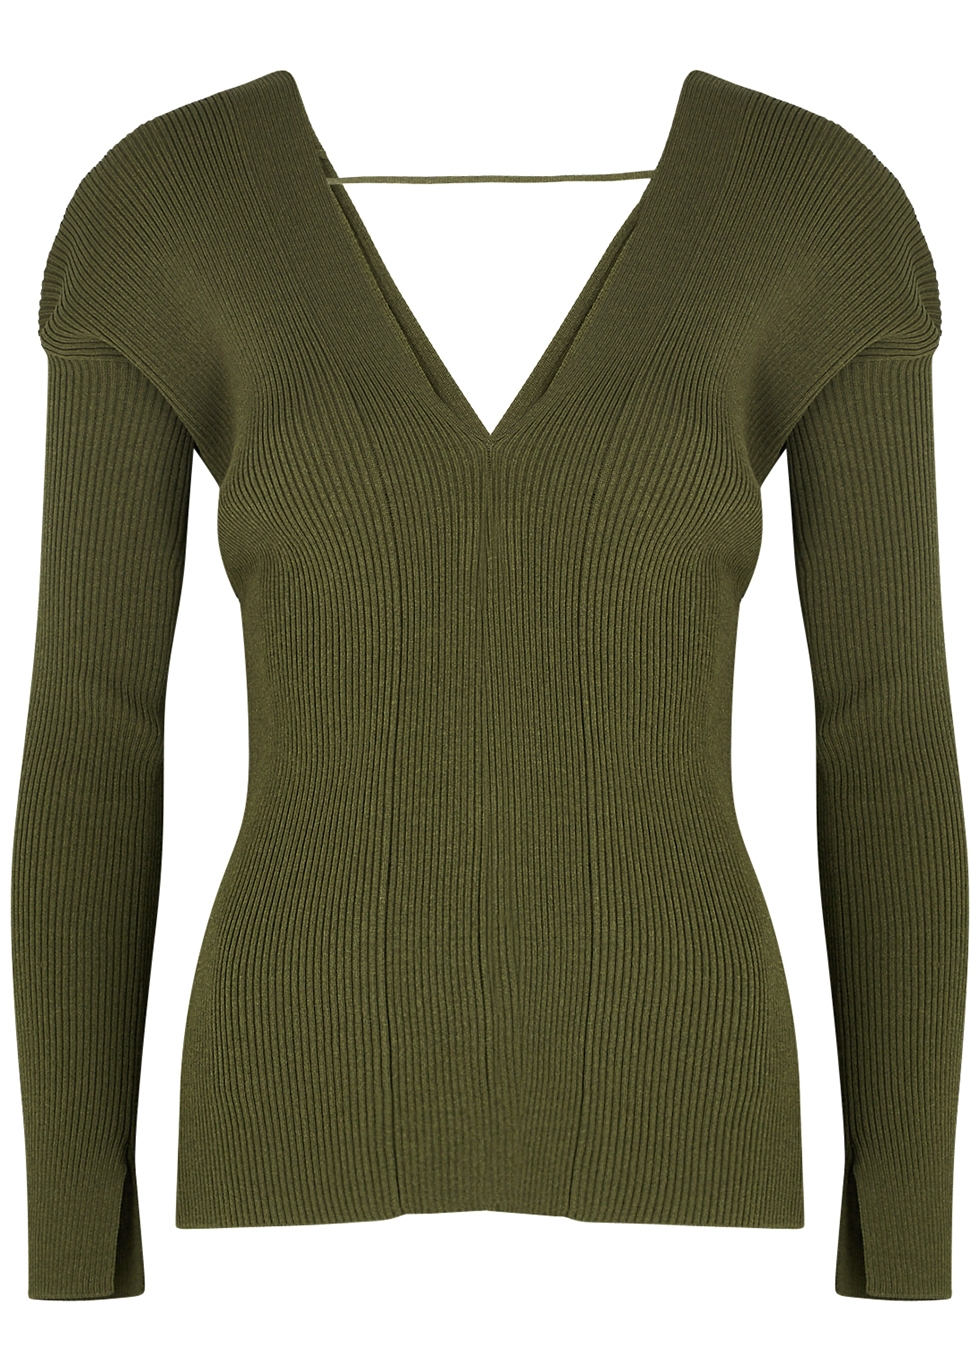 Emily army green stretch-knit top